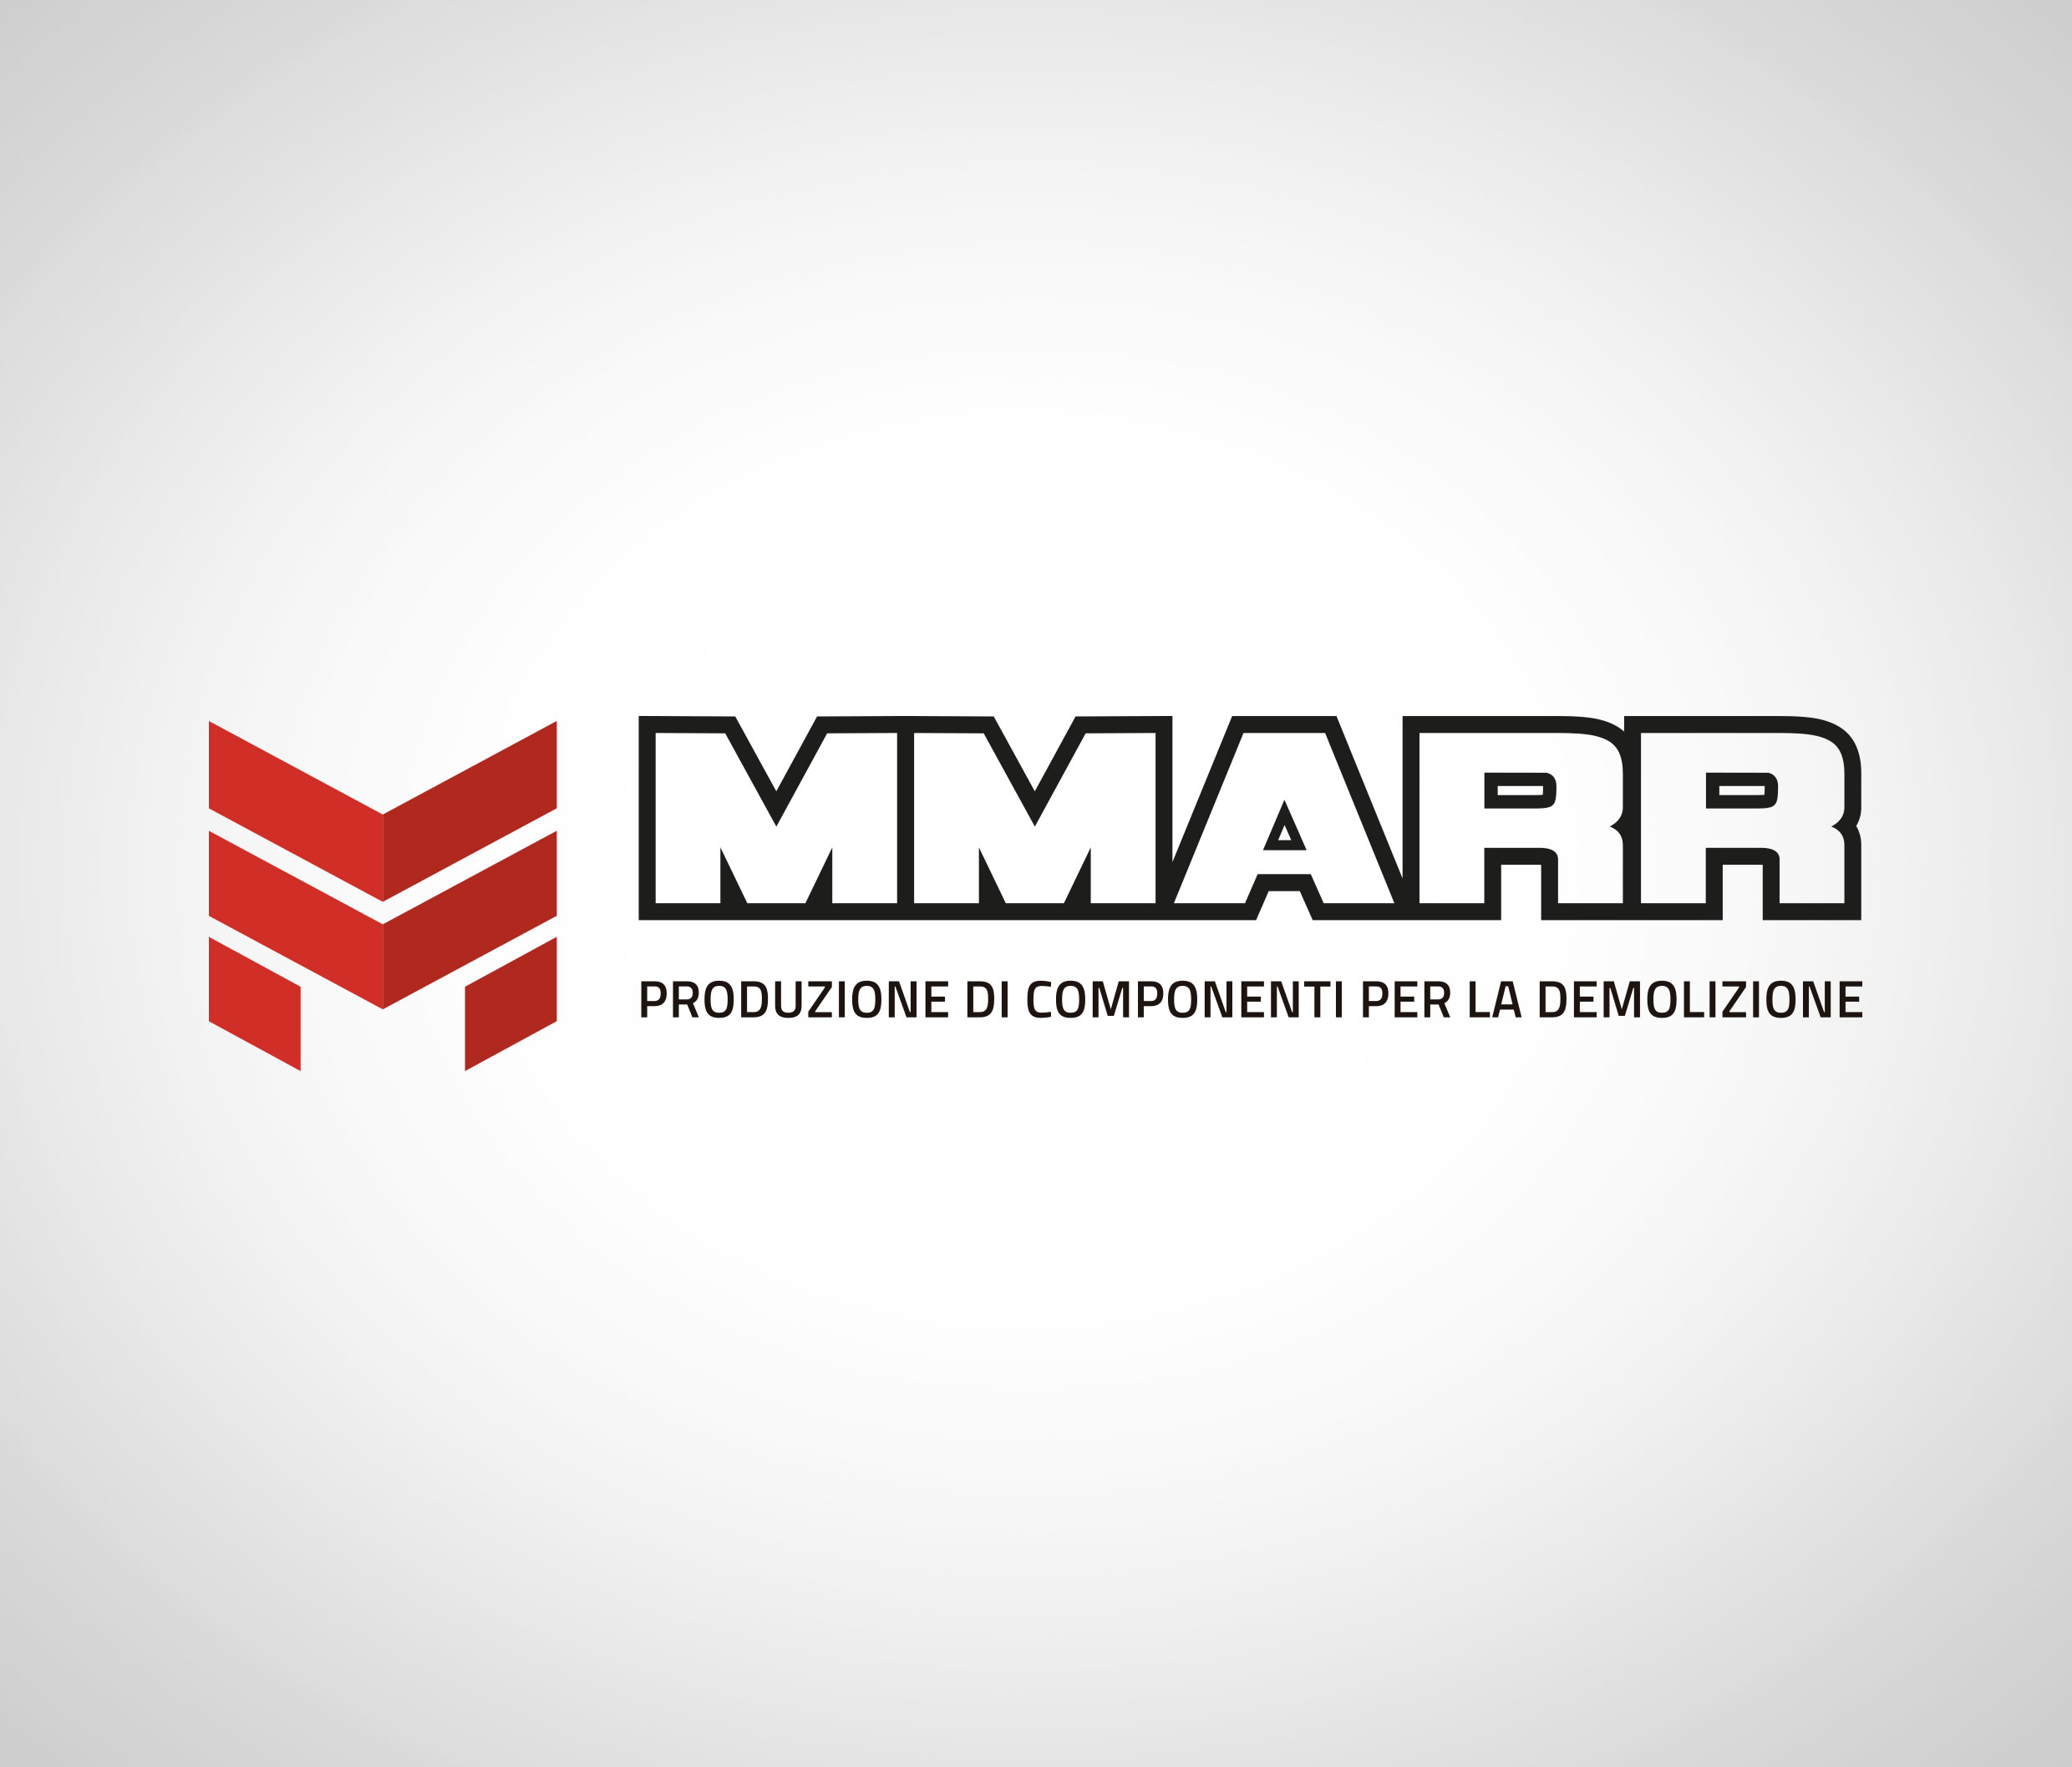 MMARR